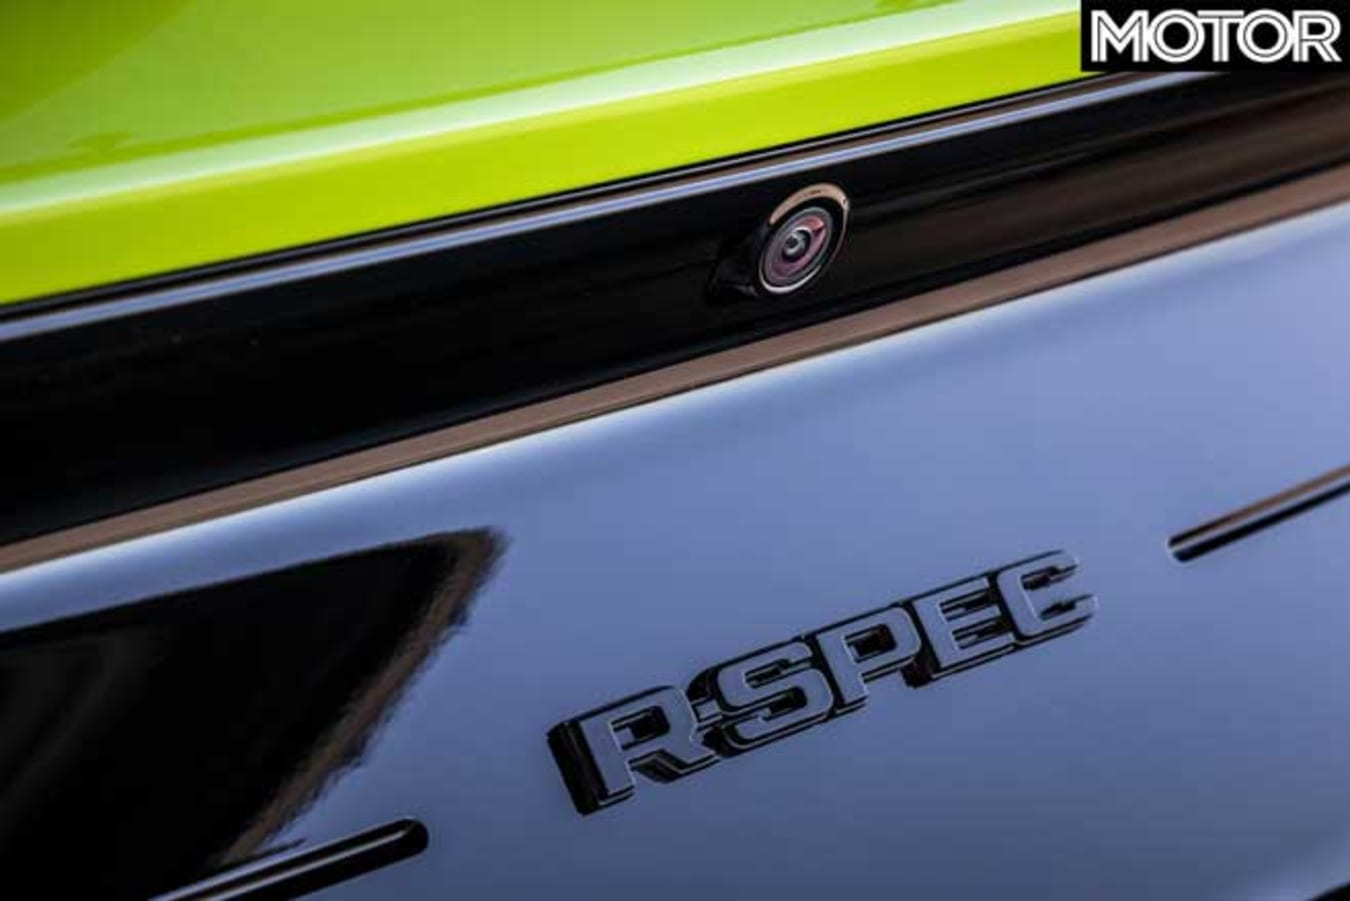 Ford Mustang R-Spec not sold out